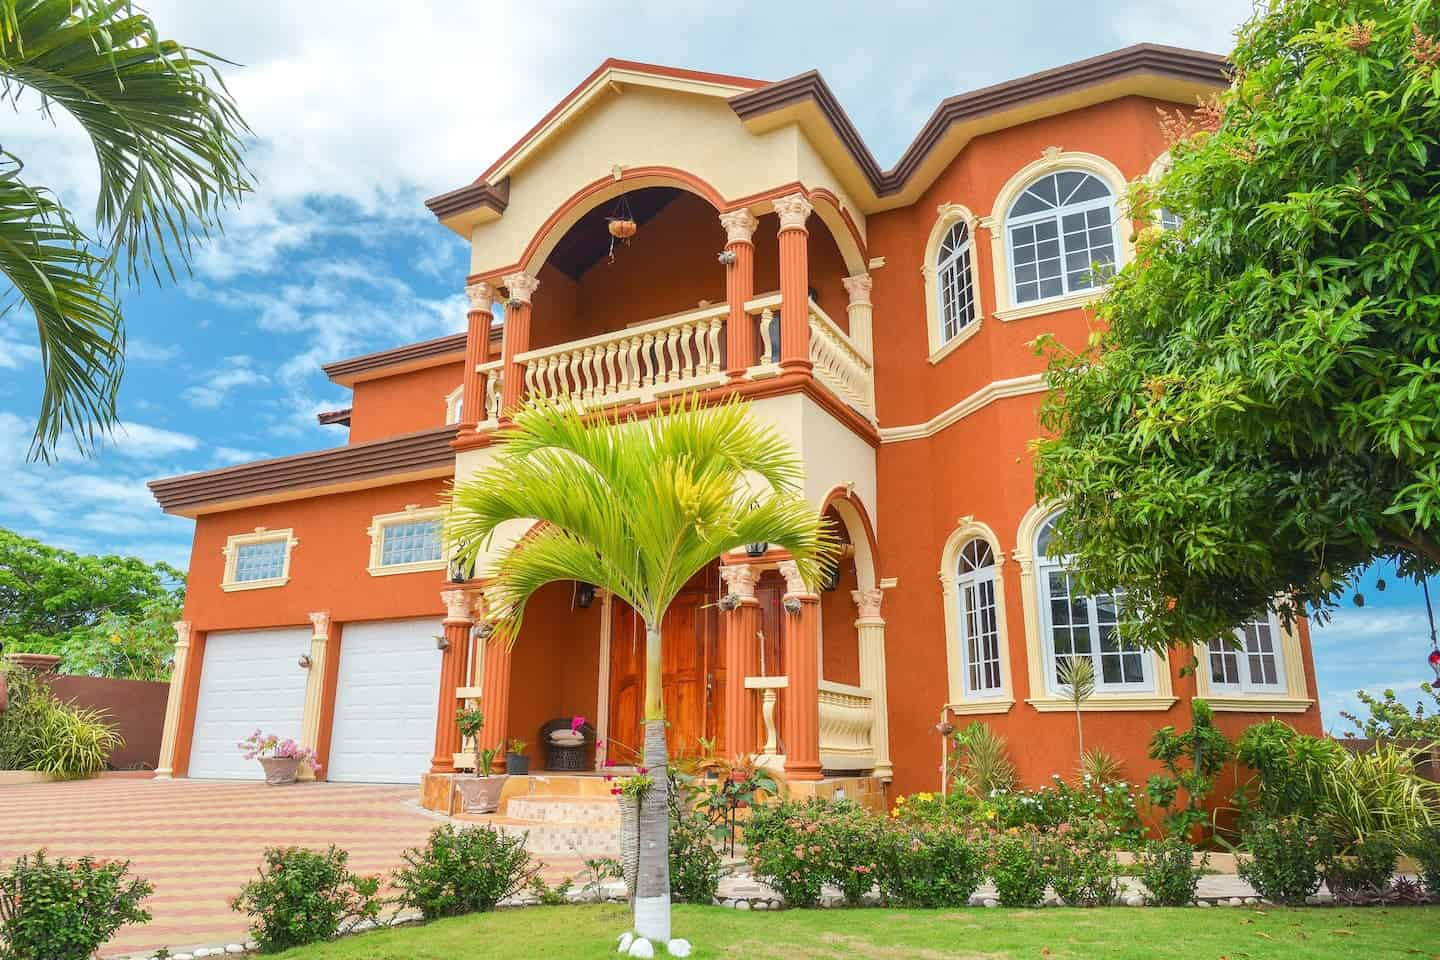 Image of Airbnb rental in Jamaica